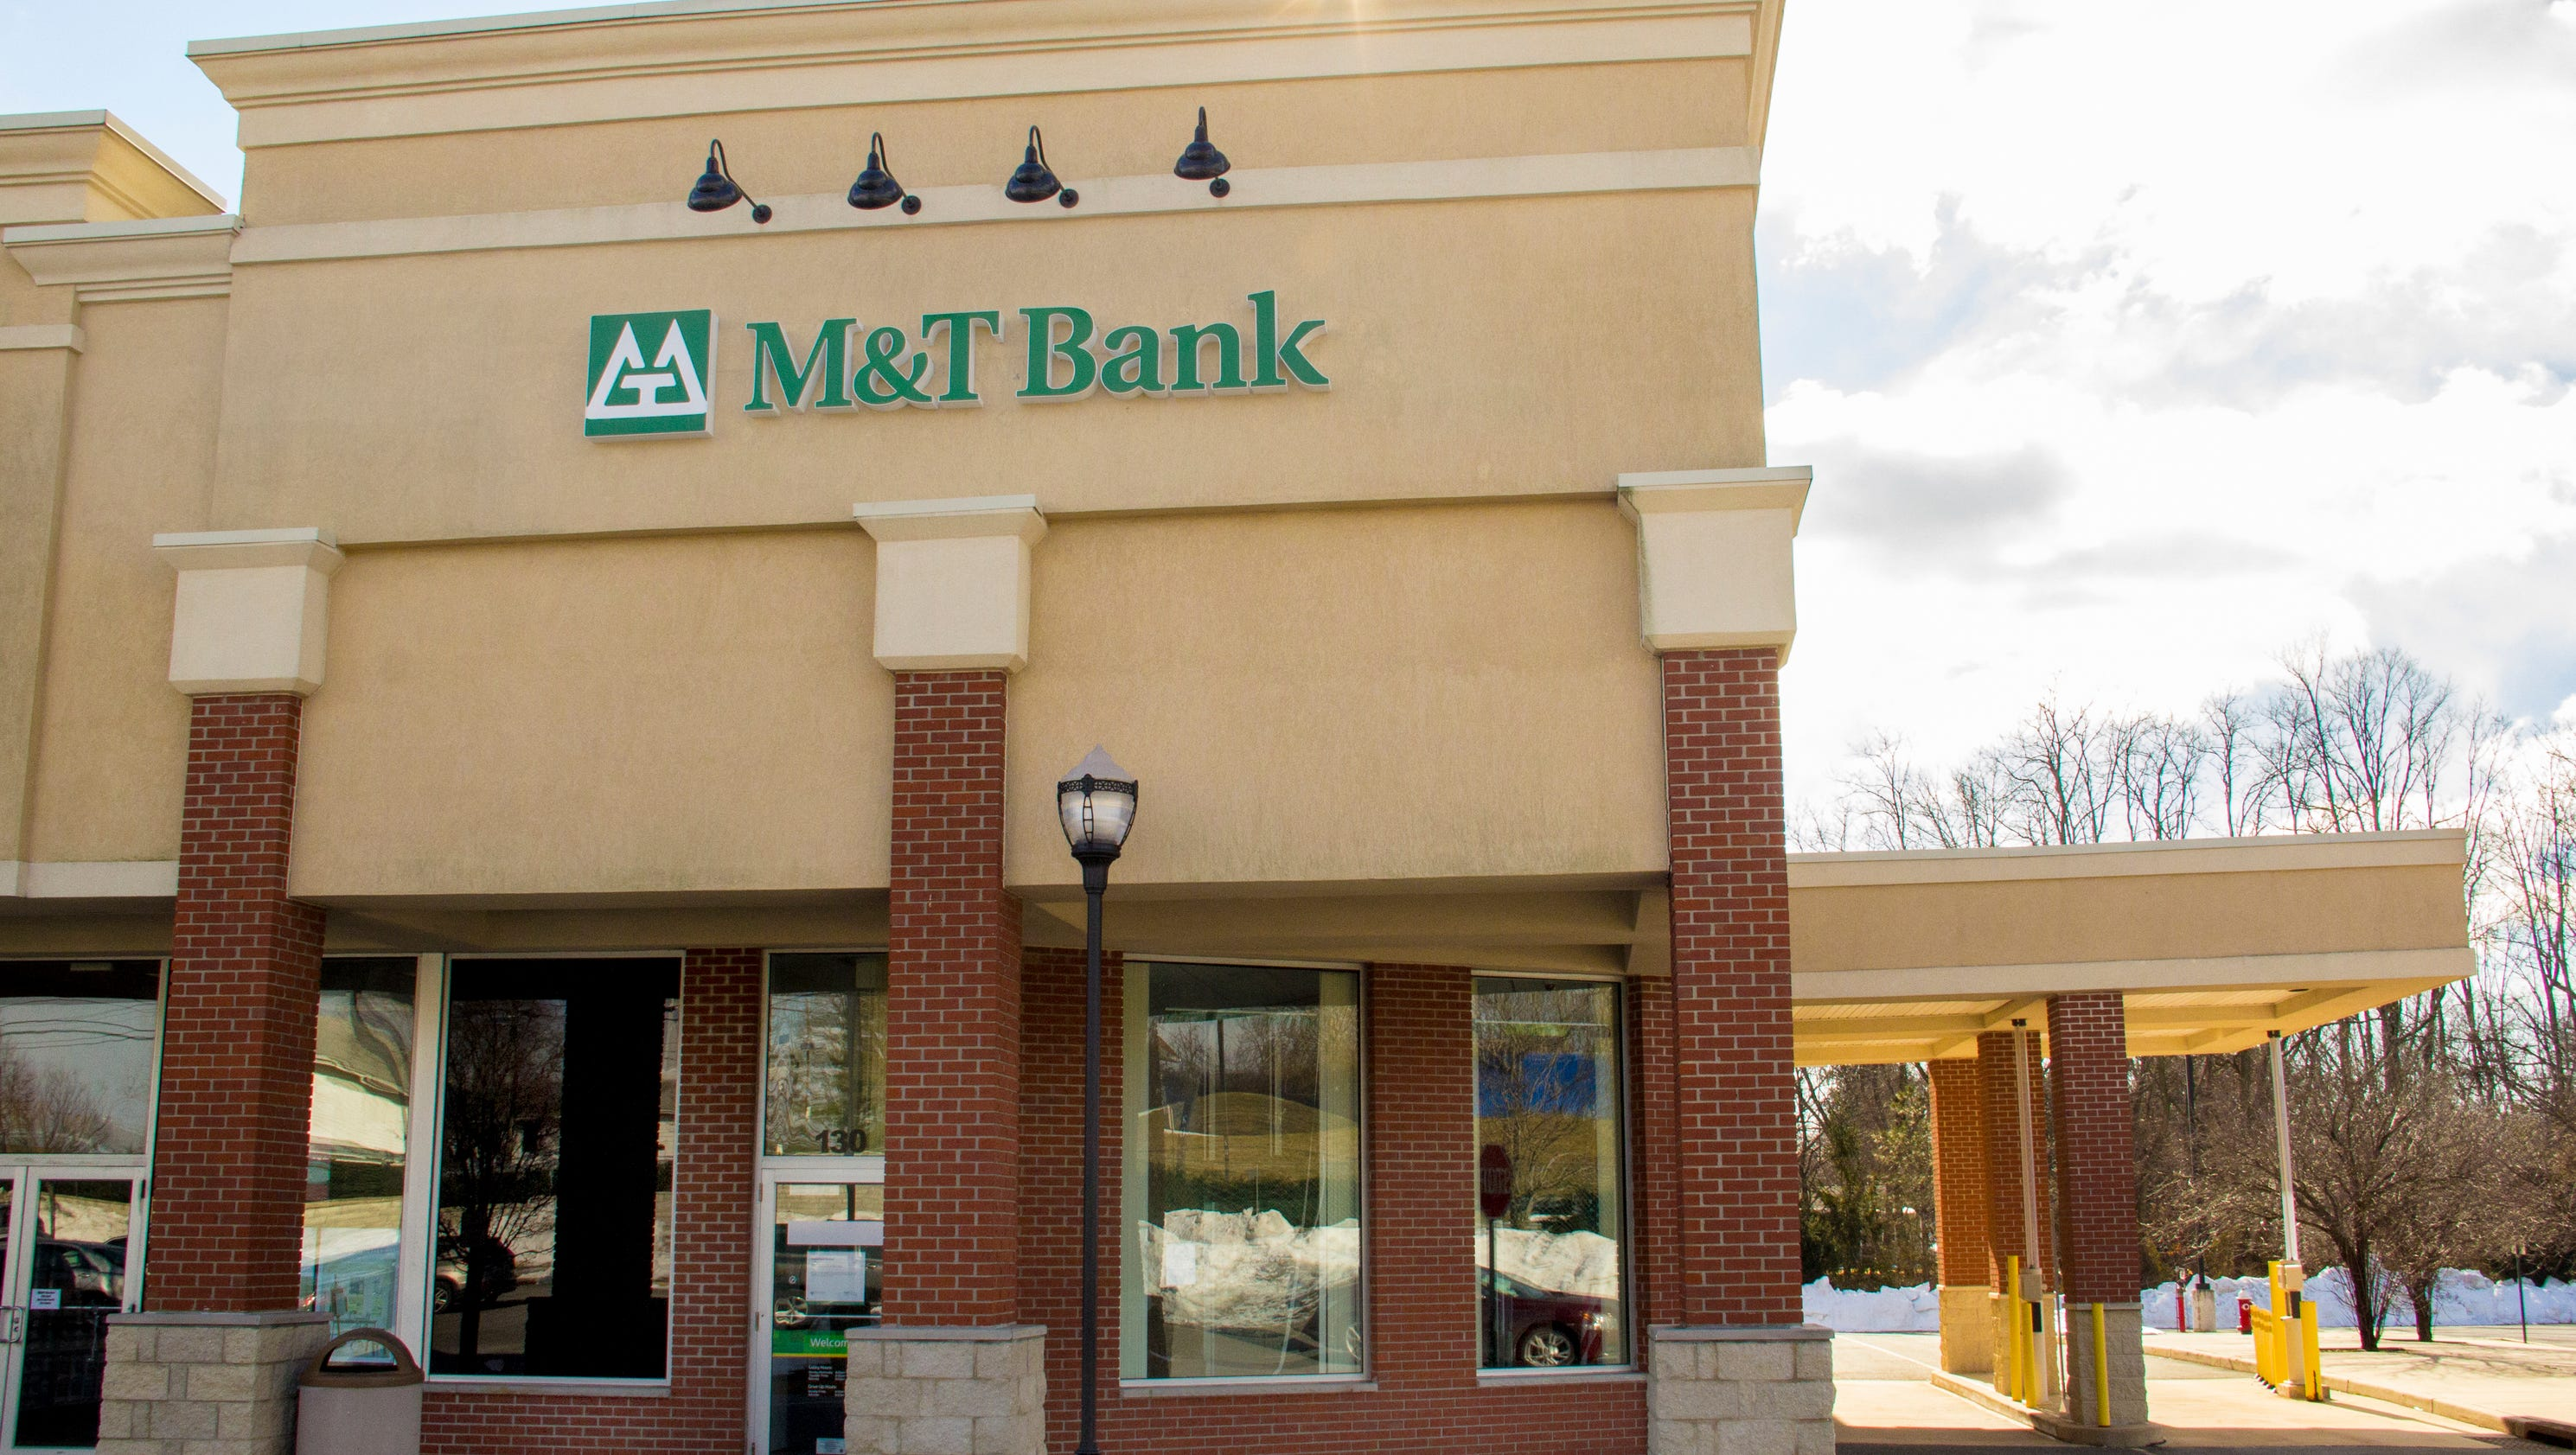 M&T Bank offers mortgage assistance in certain neighborhoods